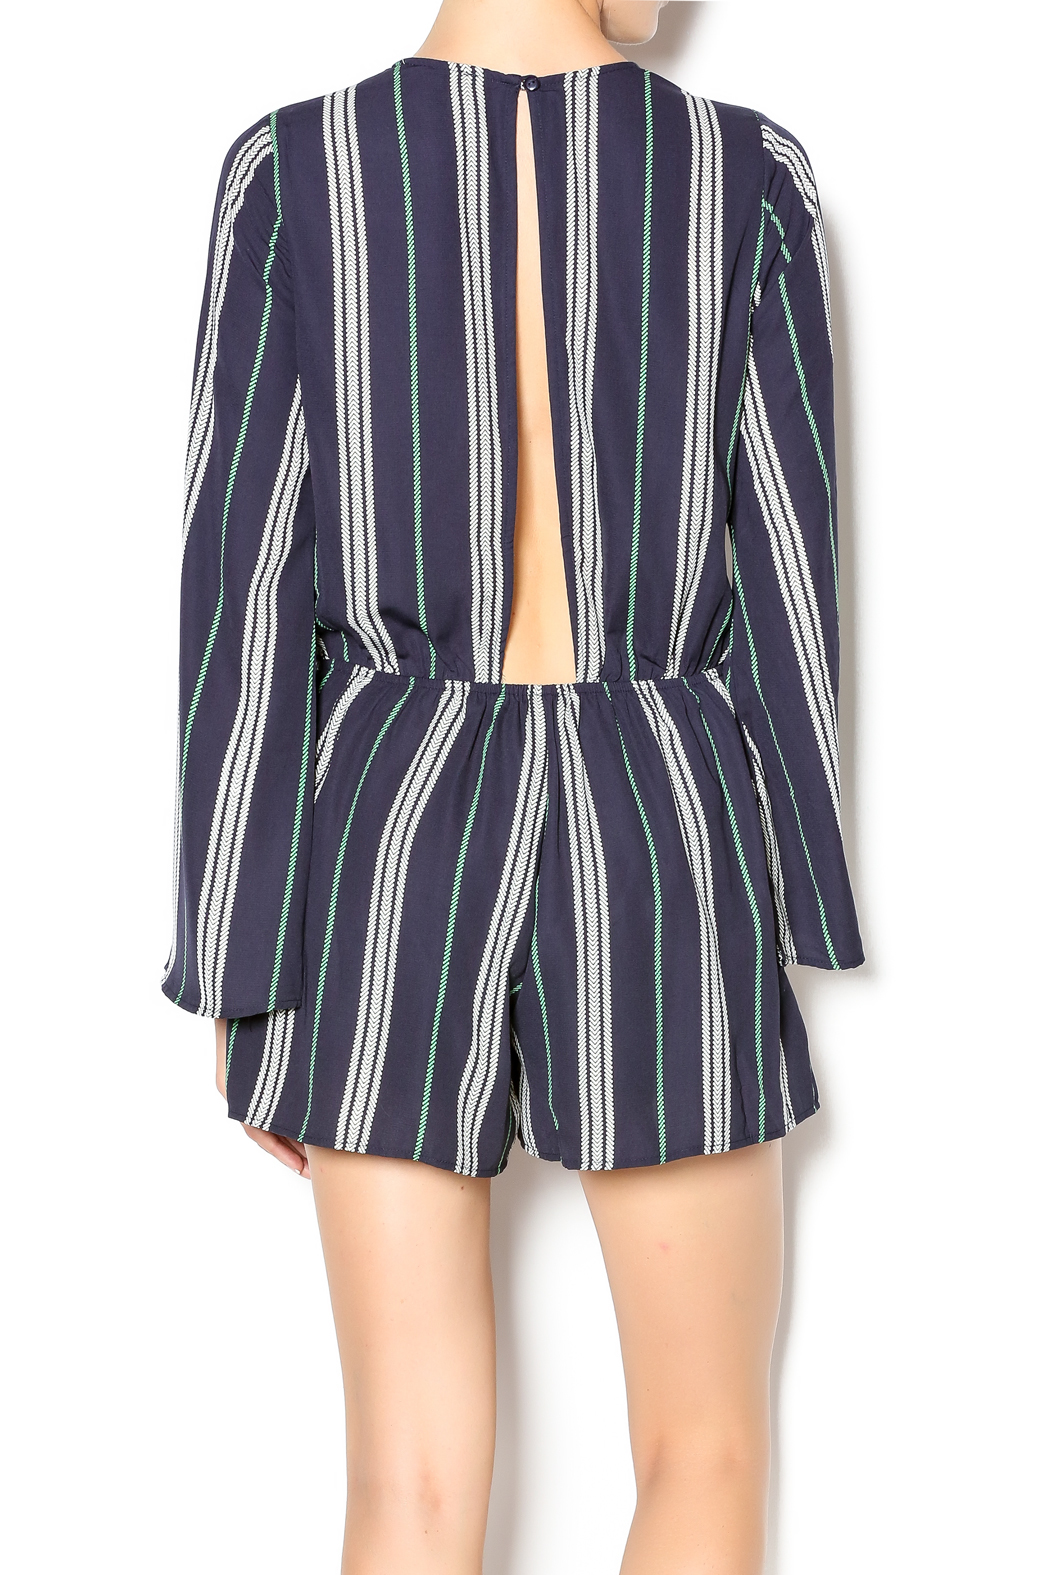 Illa Illa Navy Striped Romper - Back Cropped Image